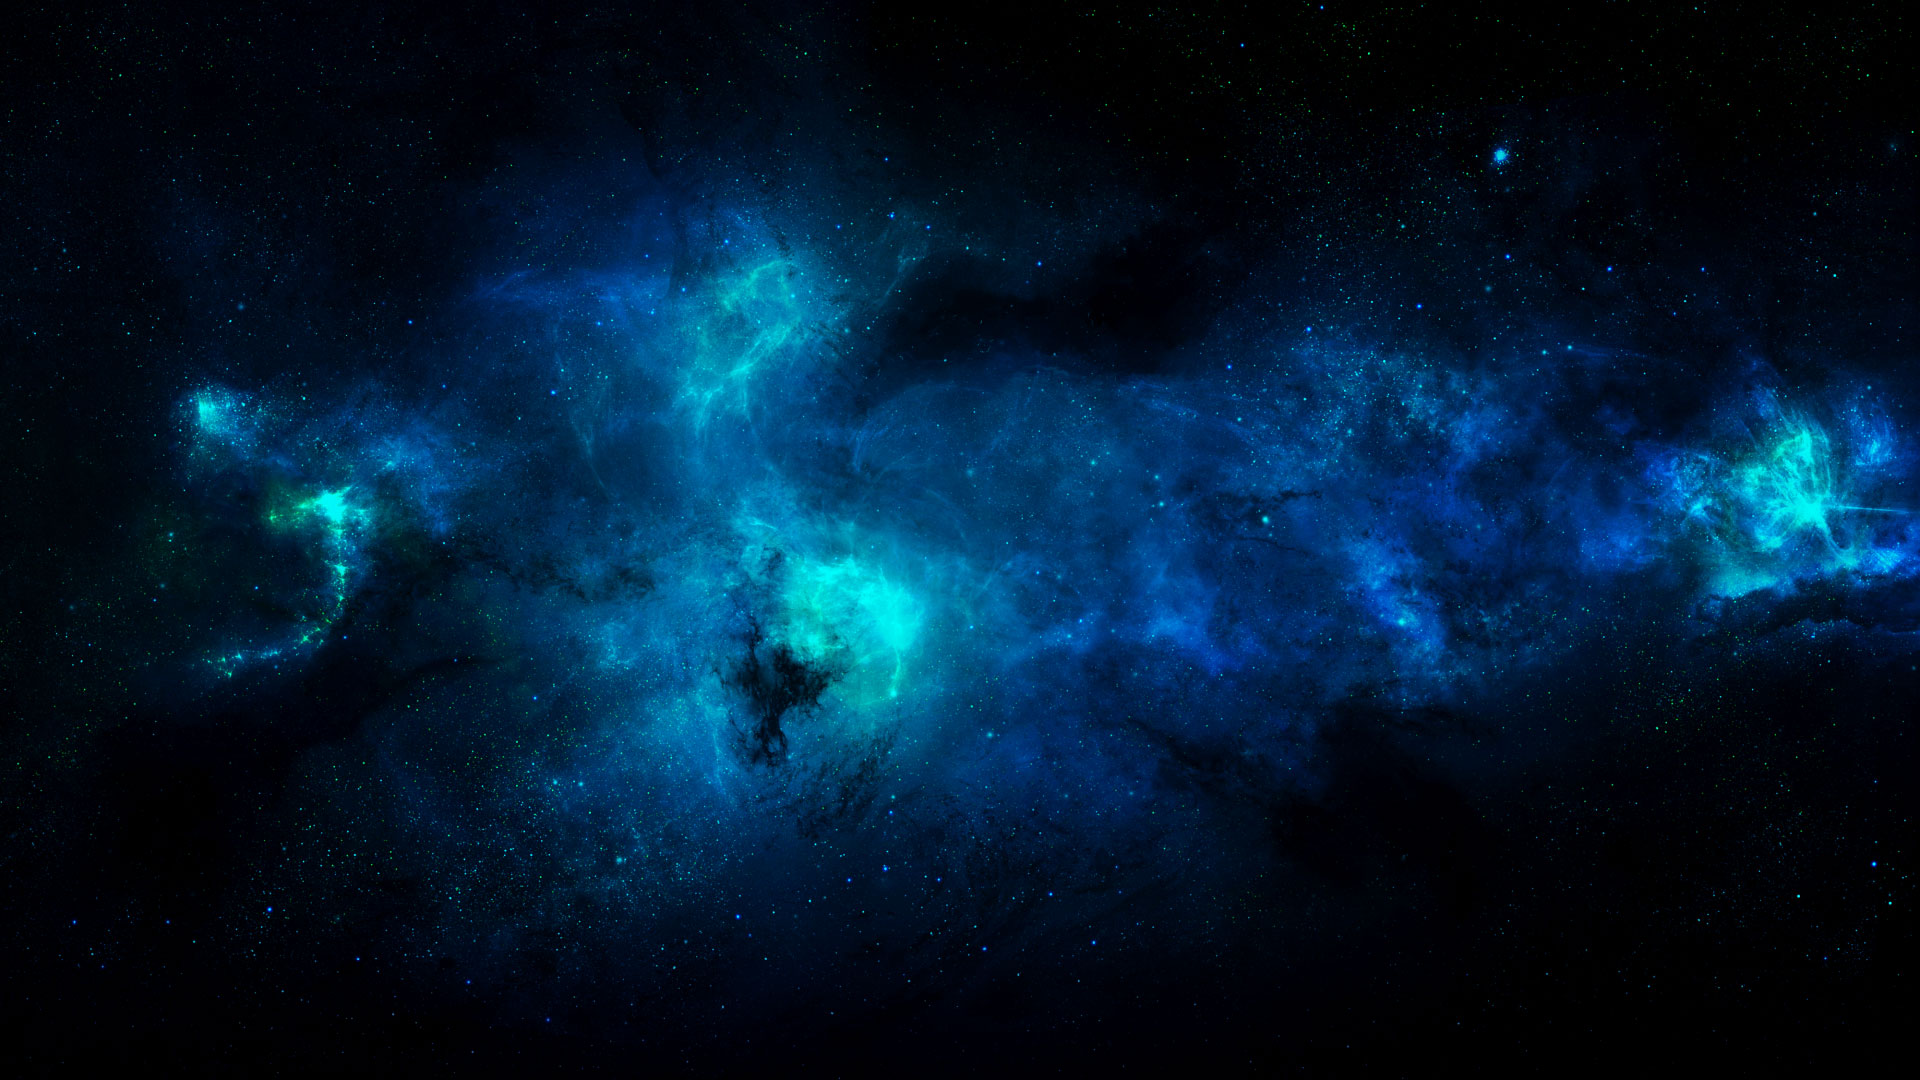 desktop wallpaper galaxy wallpapers cool 1920x1080 1920x1080